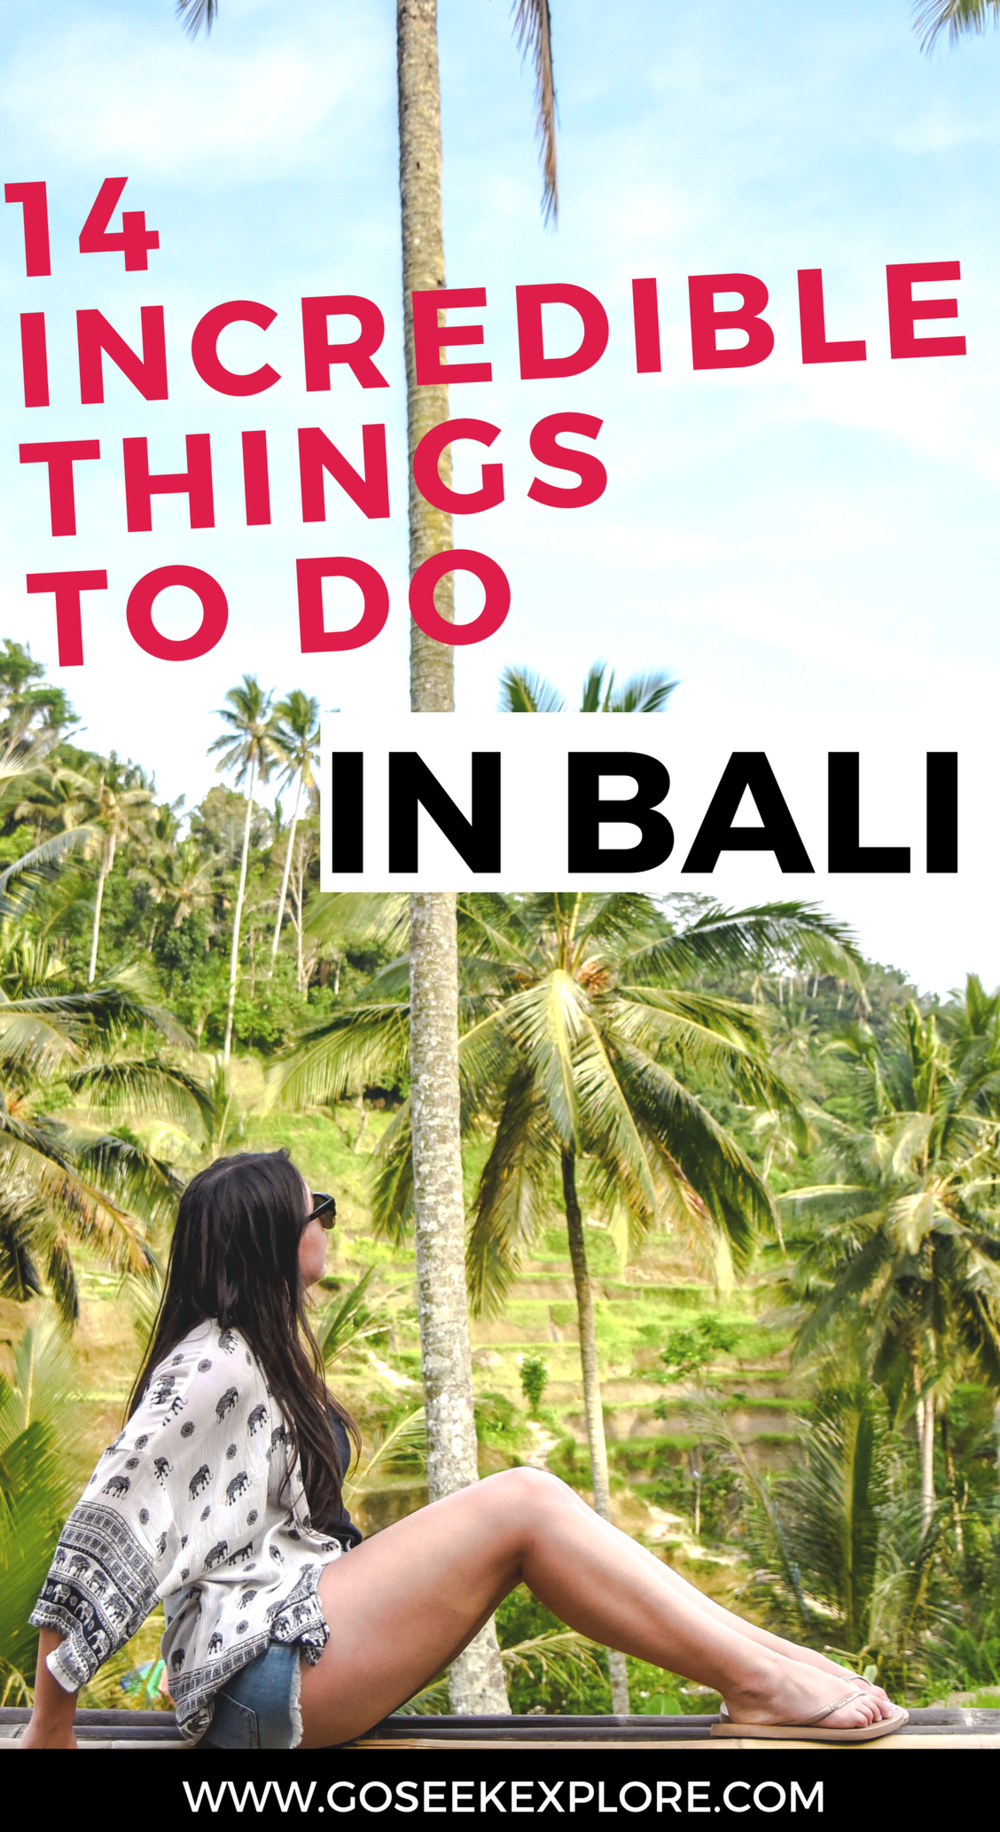 Planning a trip to Bali? This post lists 14 incredible things you must do on a trip to Bali! From the amazing rice terraces, to flower baths and spas, to temples and sunsets...there is an endless amount of things to do in Bali. Let this post help you get started!